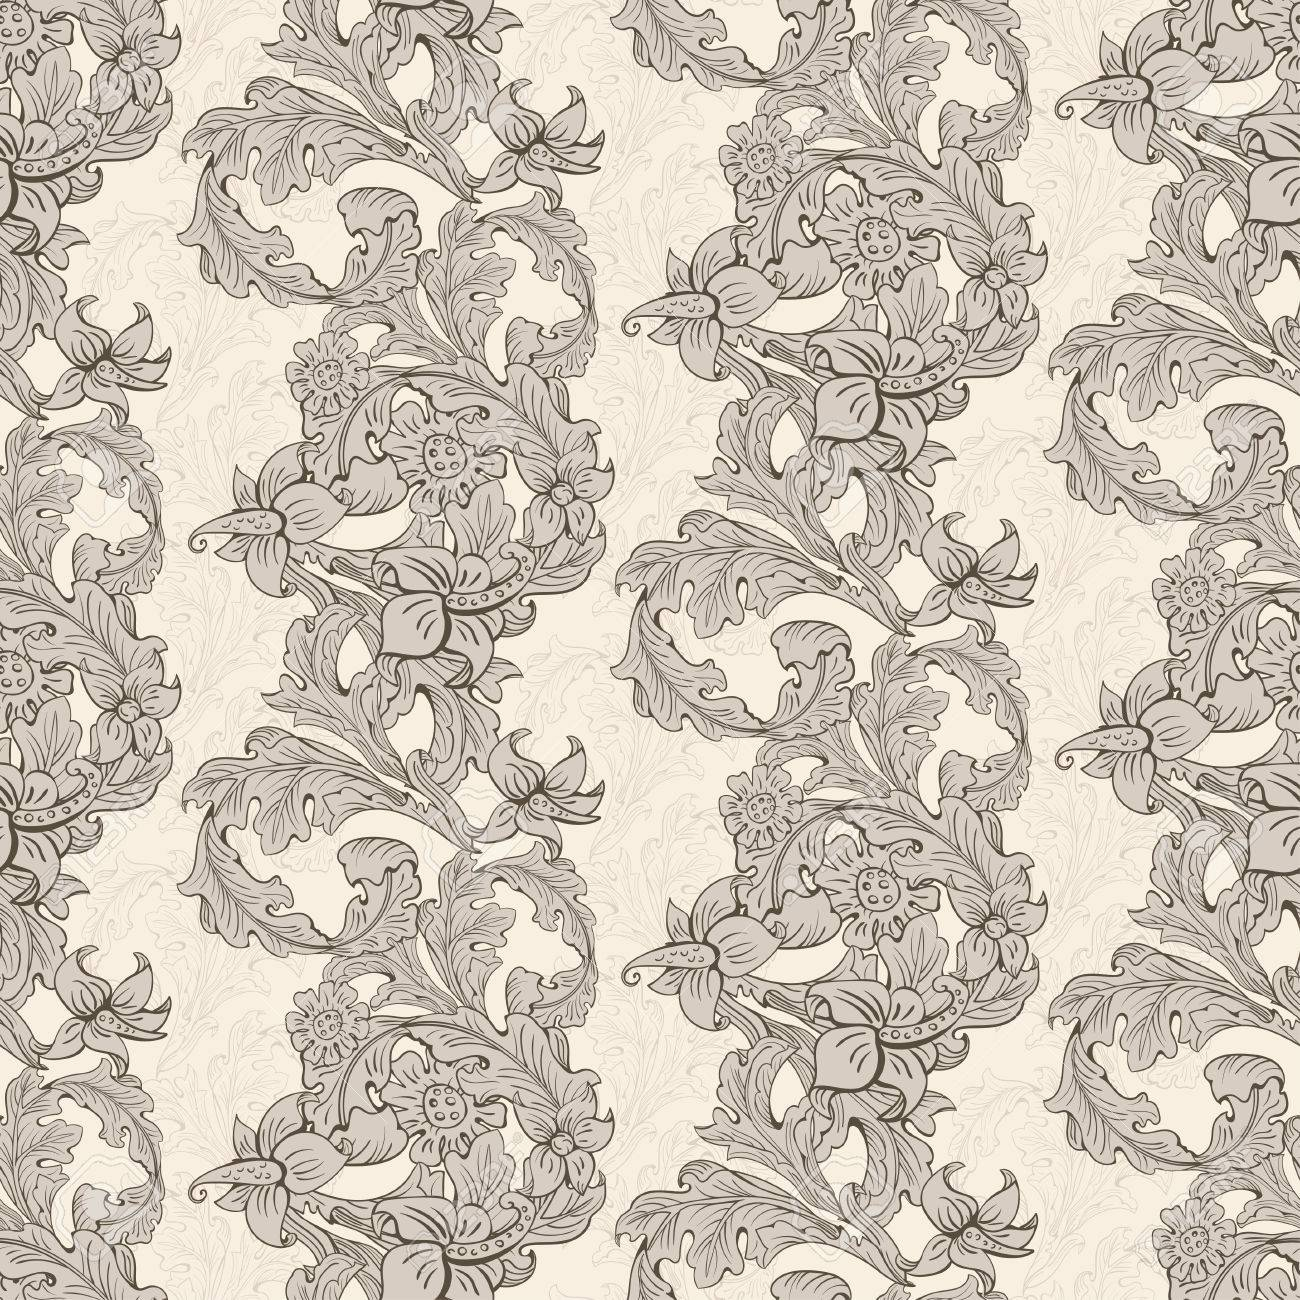 Vintage Wallpaper Seamless Pattern Composed Of Leaves And Flowers